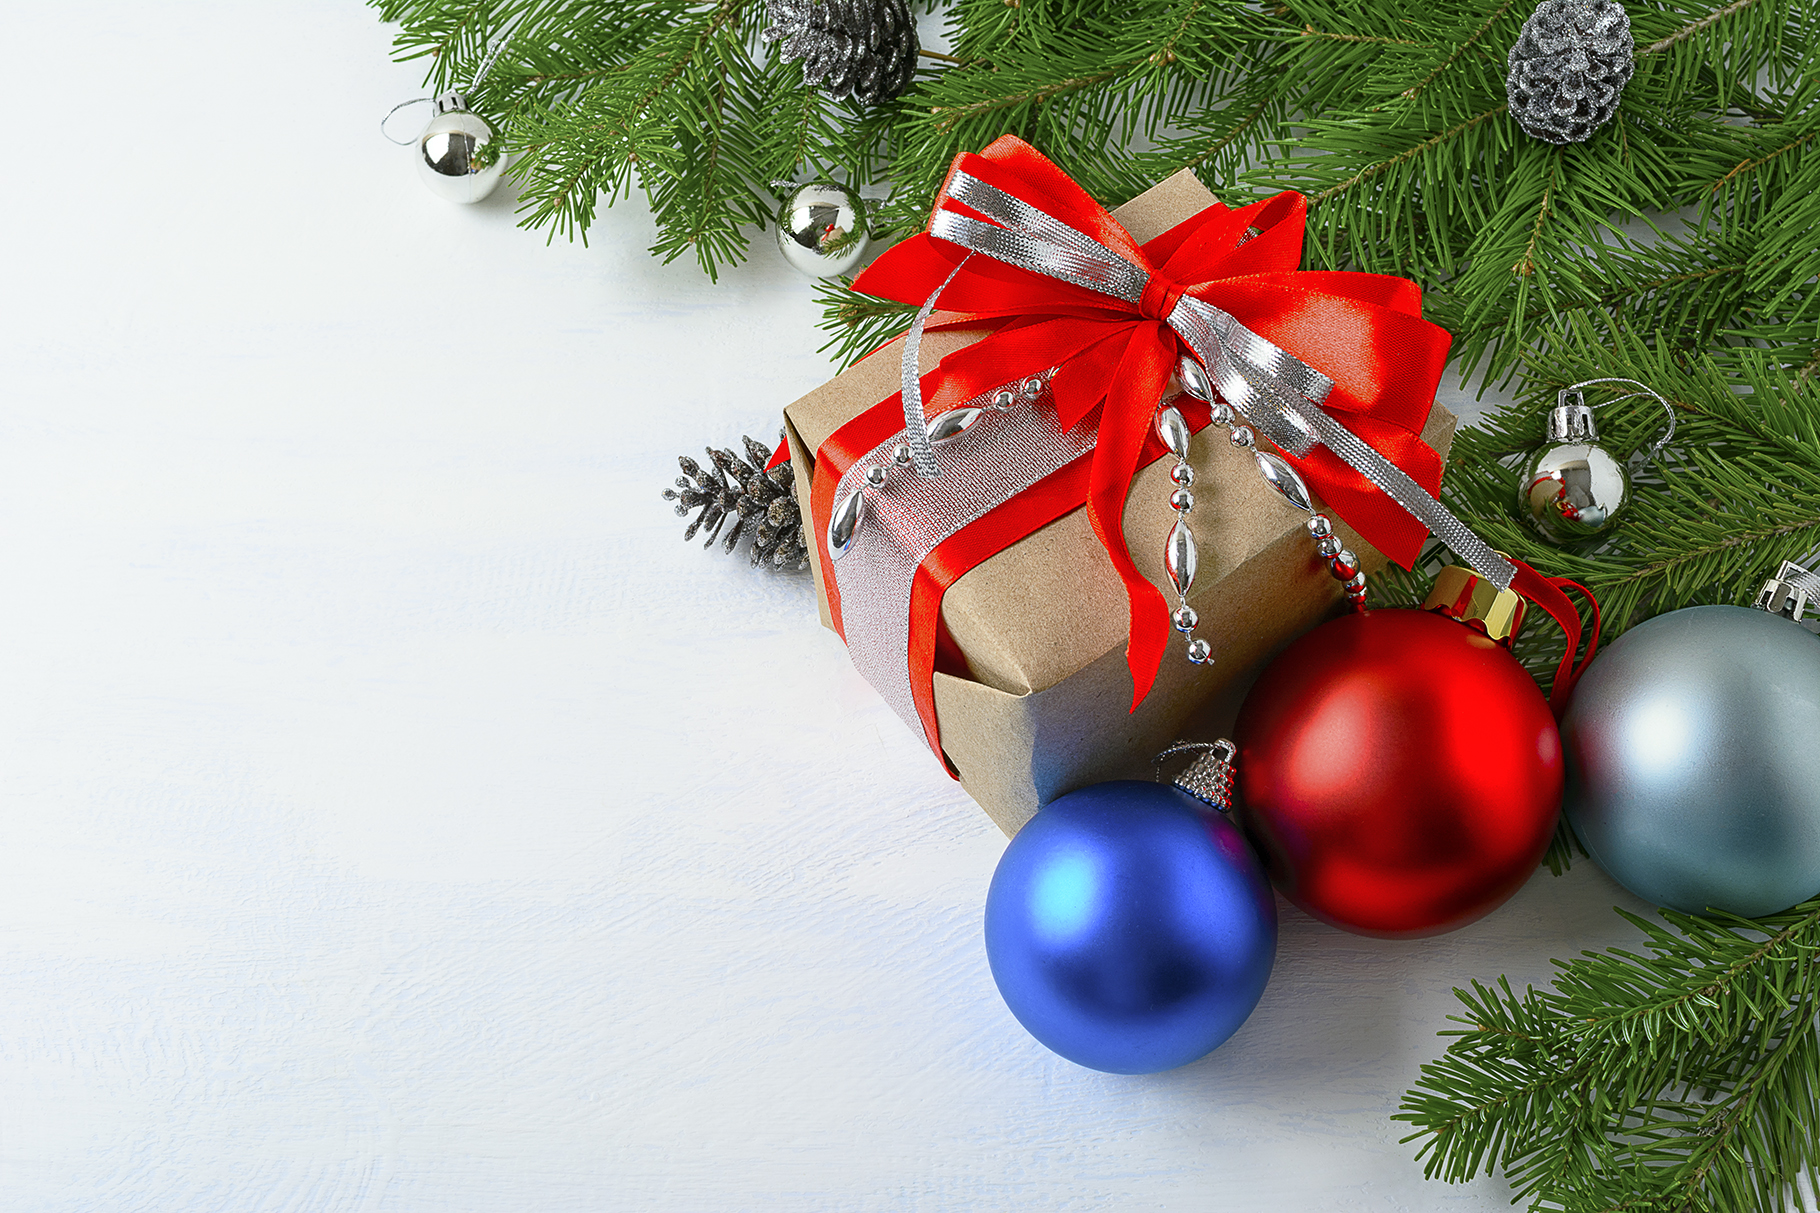 Christmas Background Pic.Christmas Background With Gift Box Blue And Red Ornaments